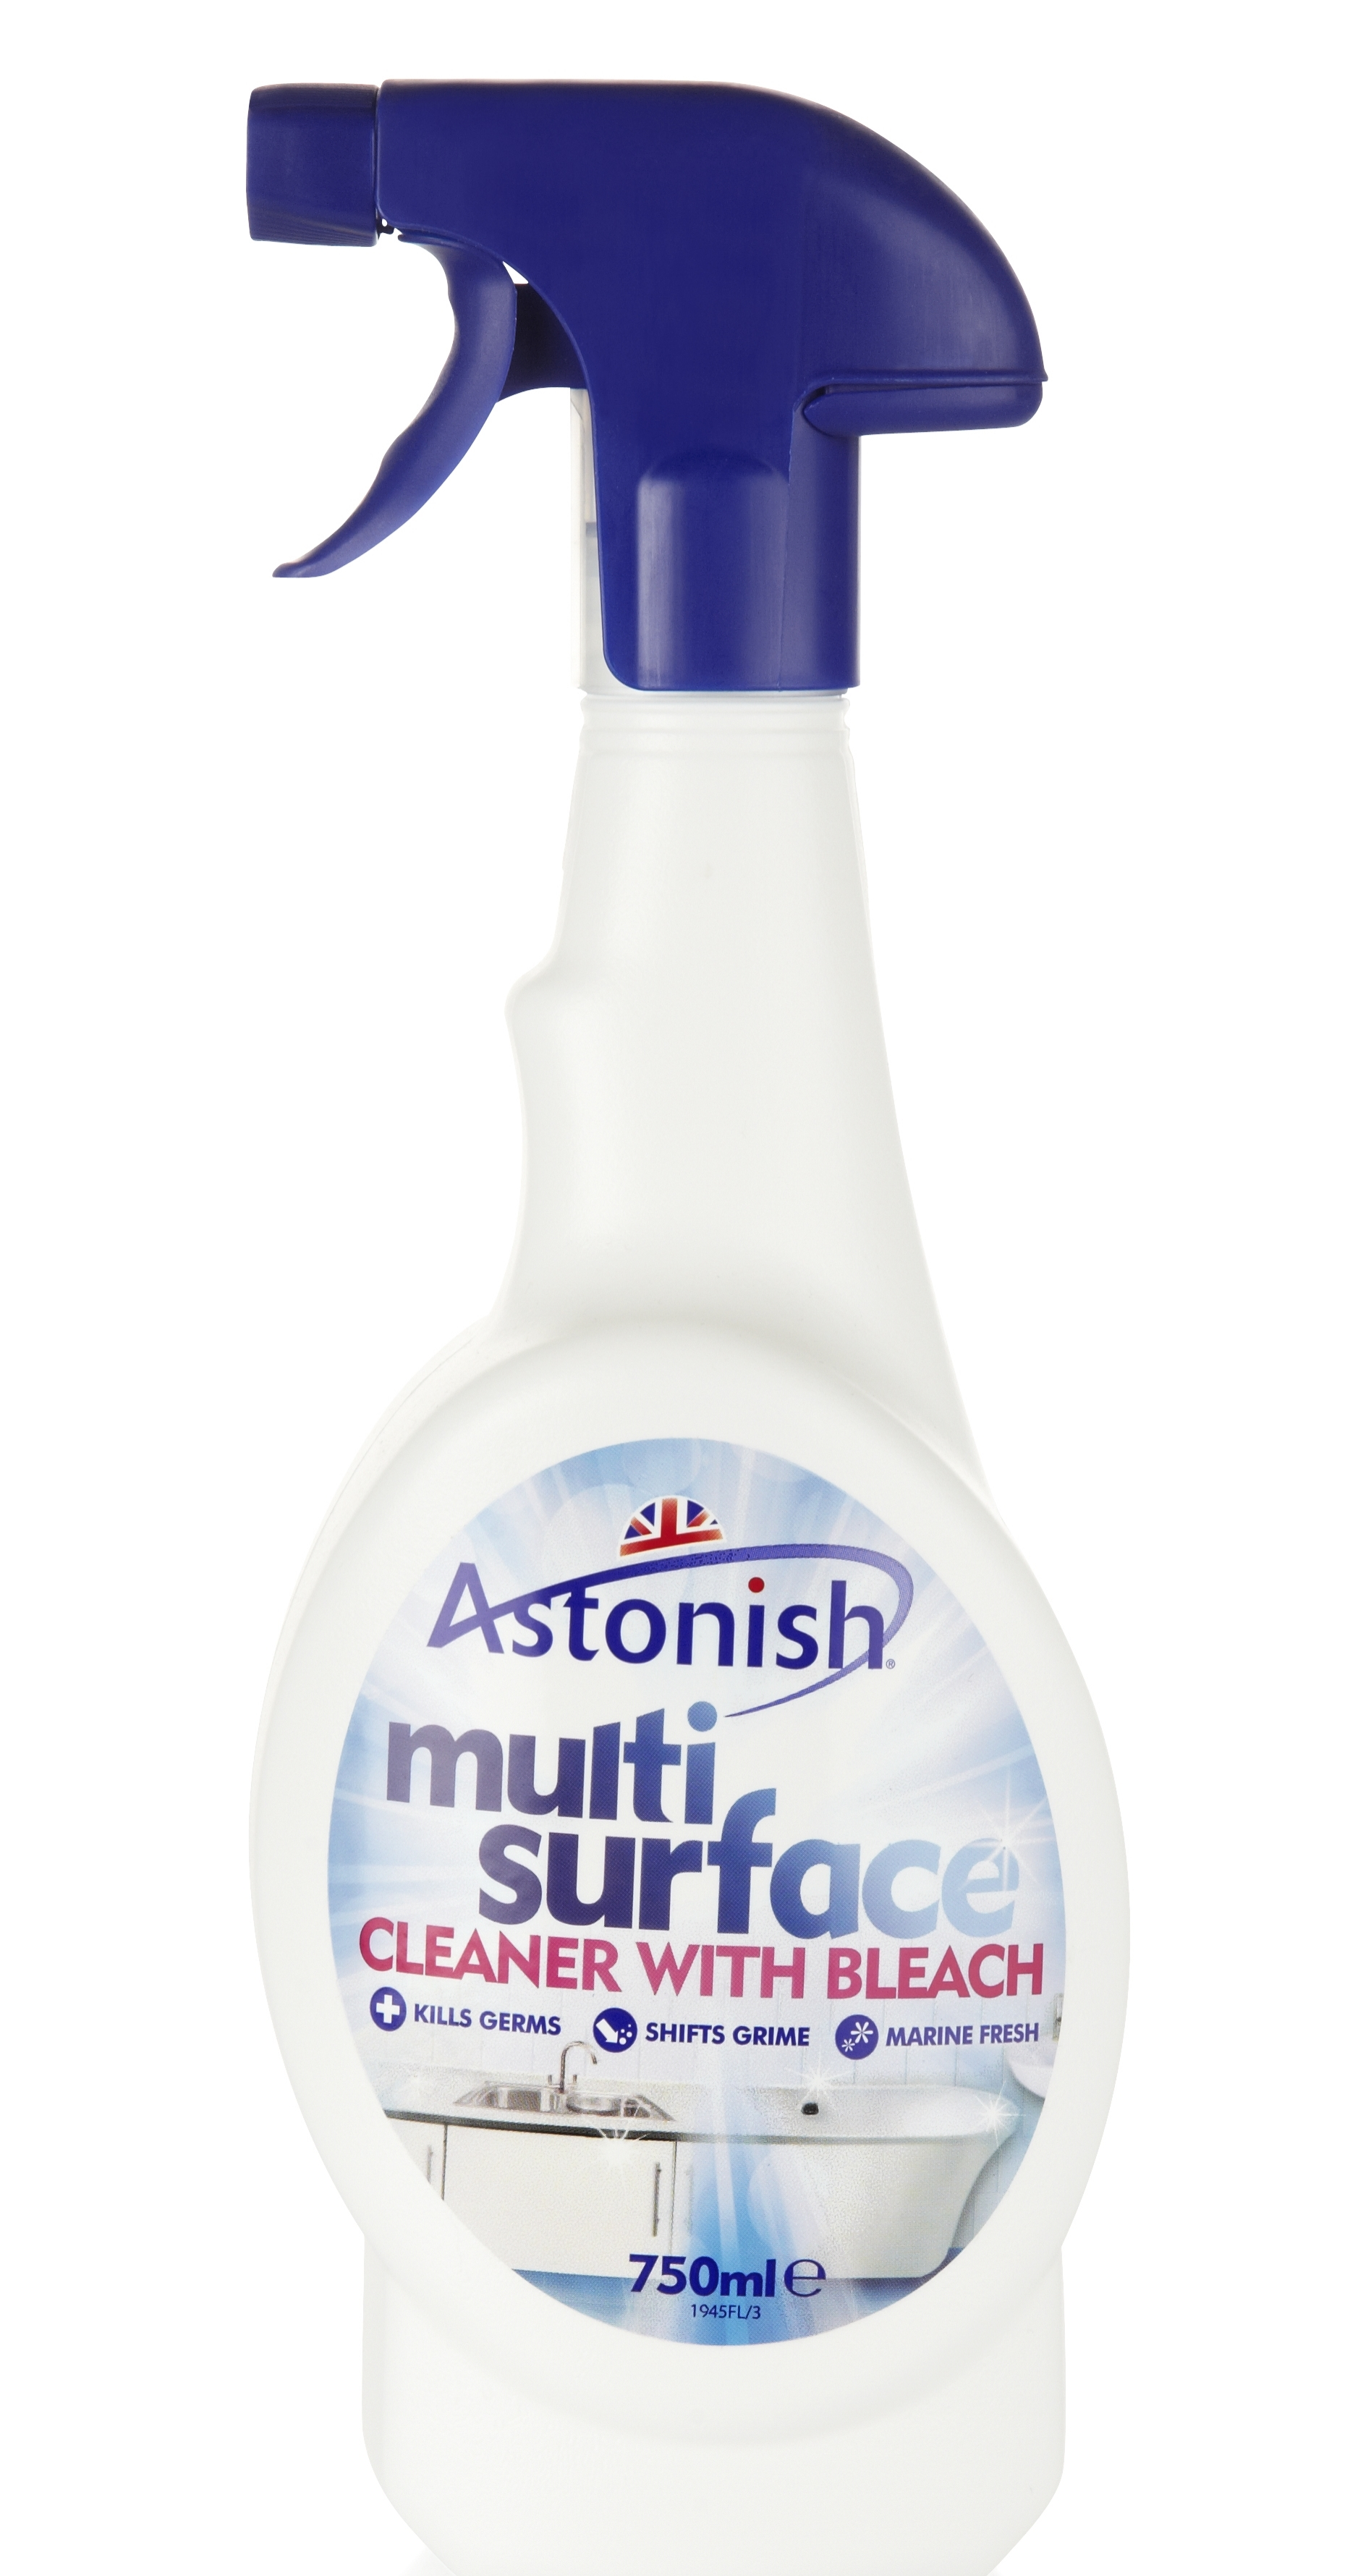 Astonish Multi Surface Cleaner with Bleach 750ml.JPG